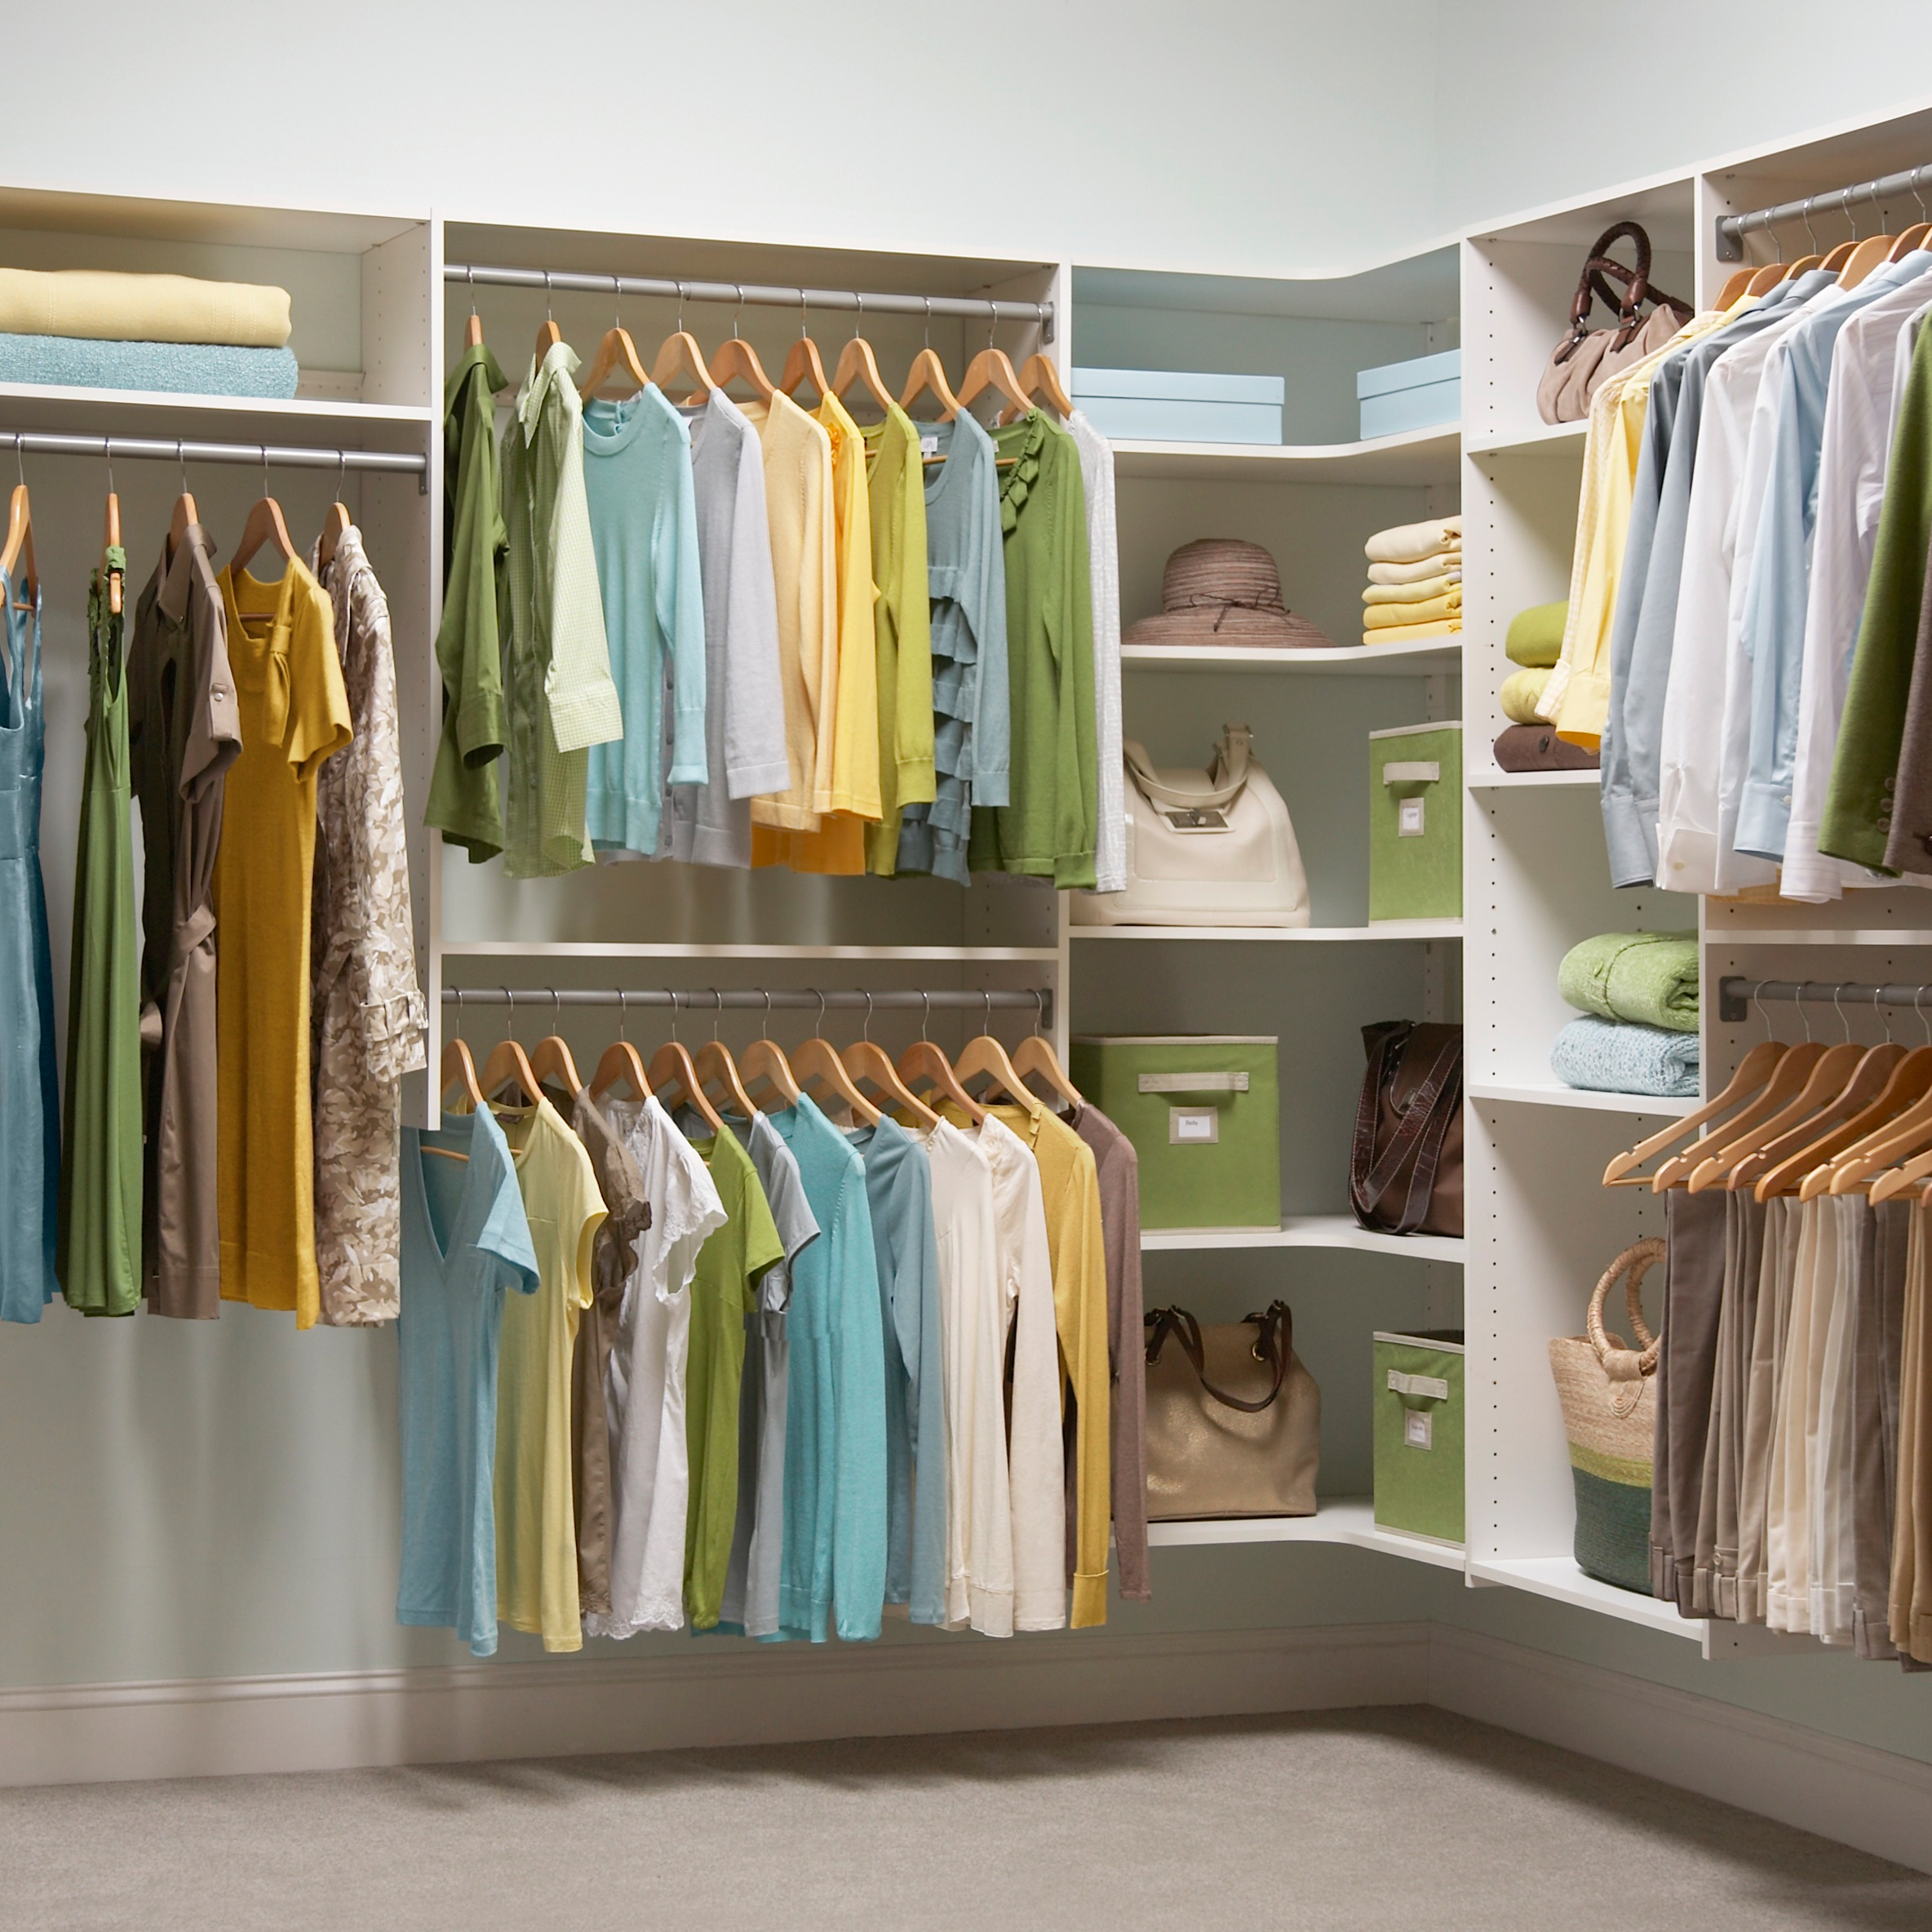 Superb Closet Organization Made Simple By Martha Stewart Living At The Home Depot  Closet System